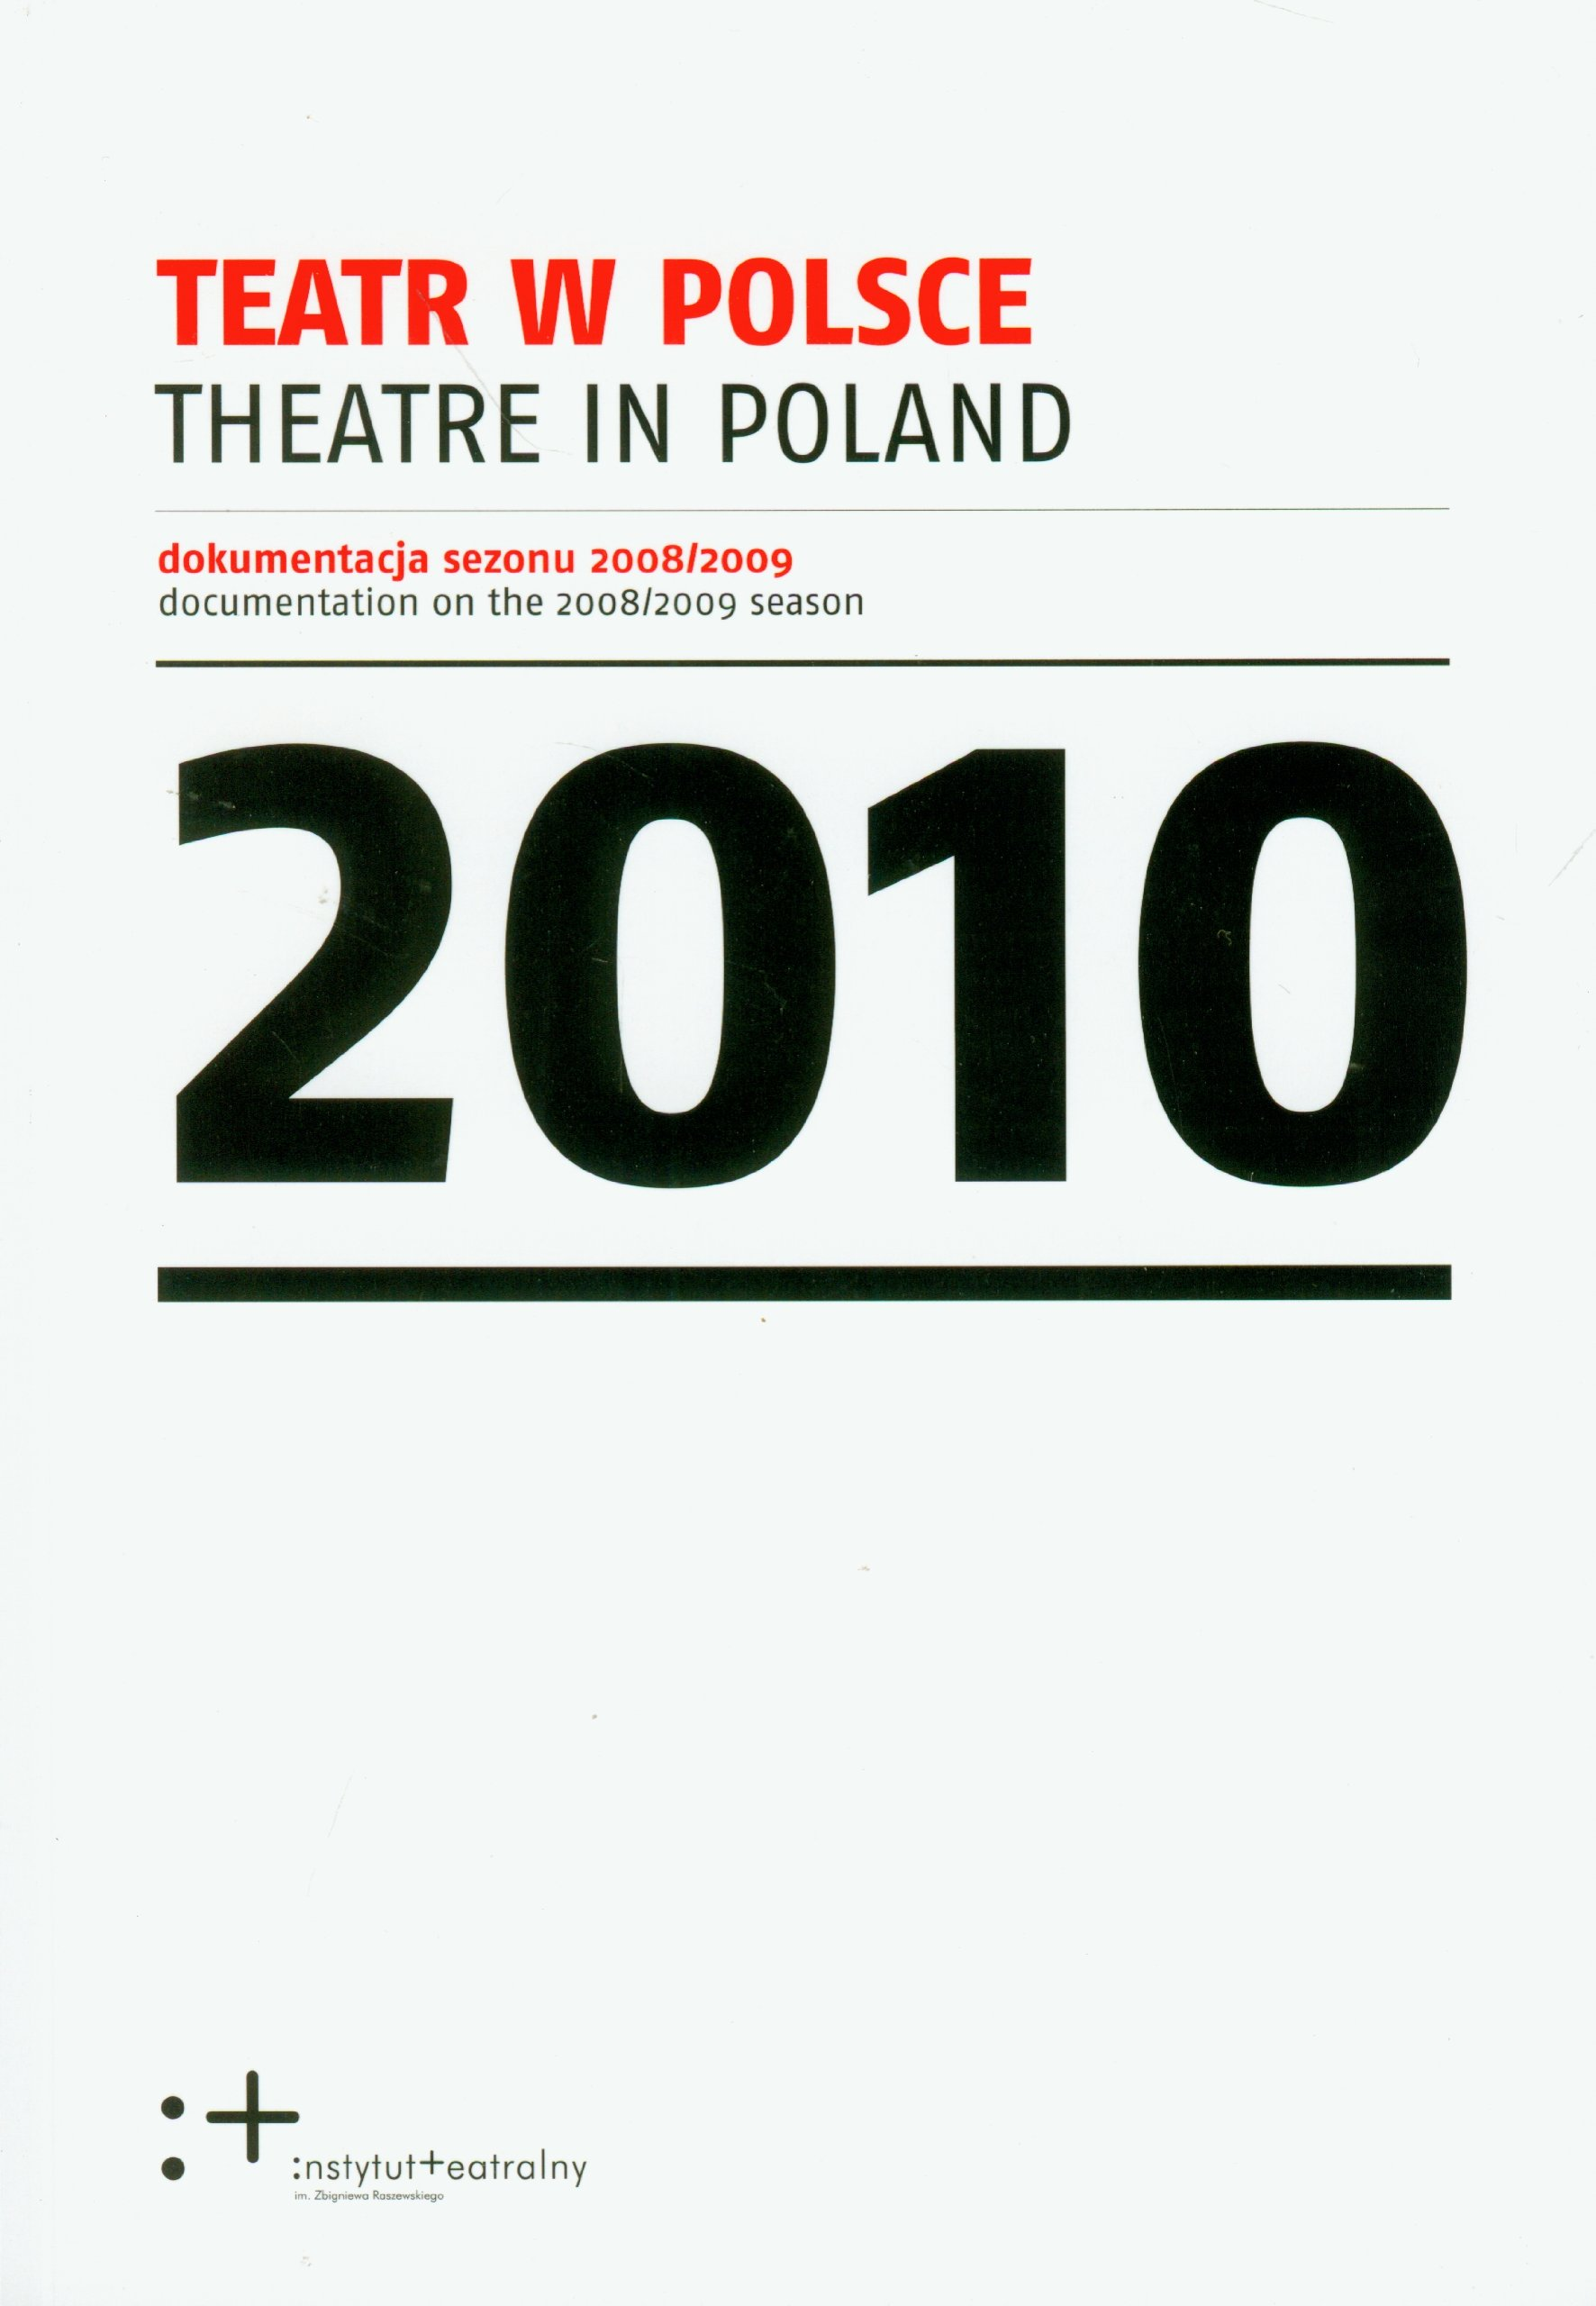 Teatr W Polsce 2010 Dokumentacja Sezonu 2008 2009 Theatre In Poland Documentation On The Season 9788392717072 Amazon Books